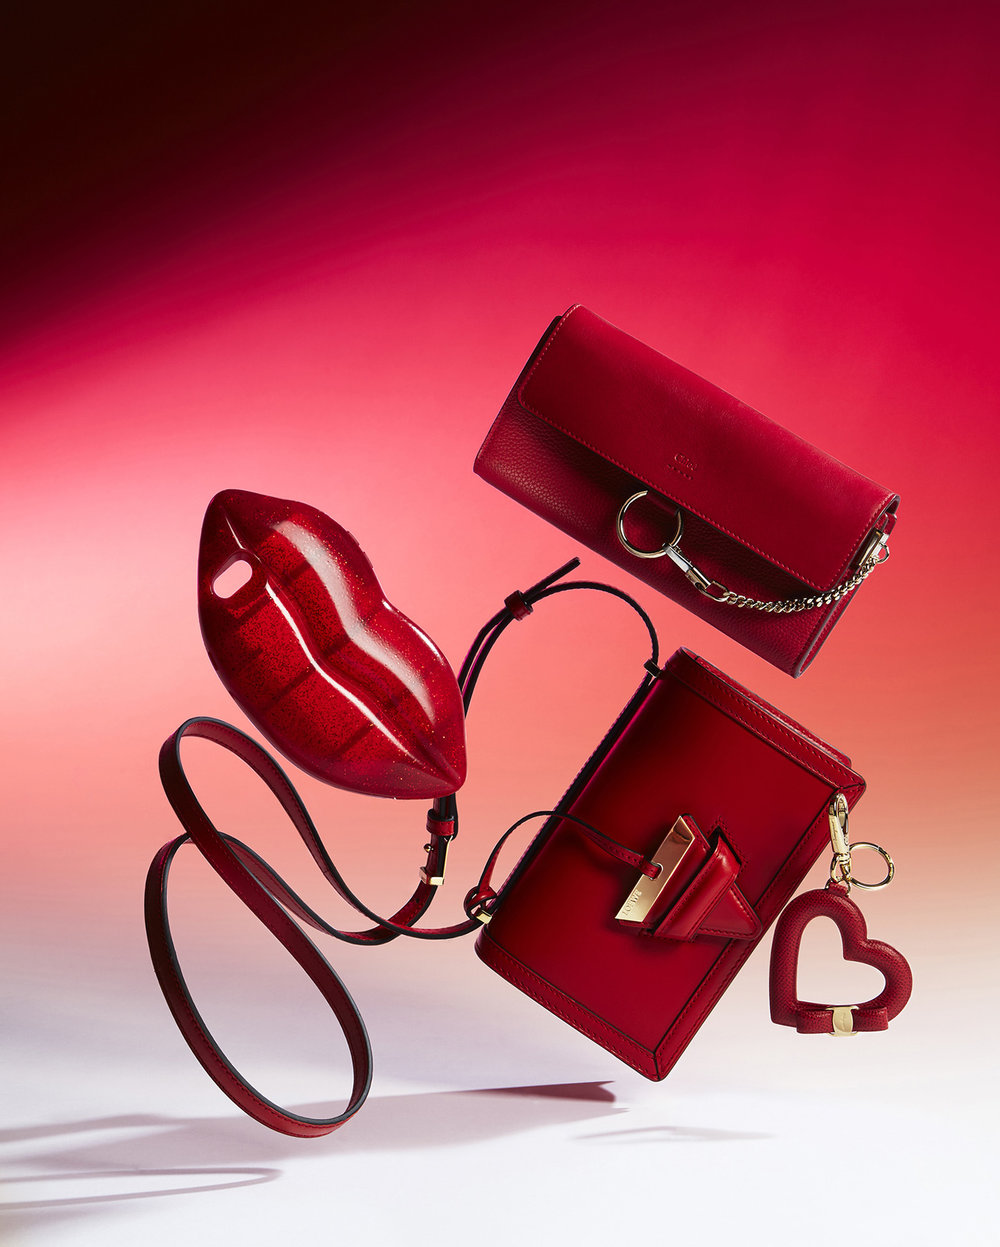 10-icon-artist-management-katie-hammond-editorial-heathrow-mag_Red_Accessories.jpg